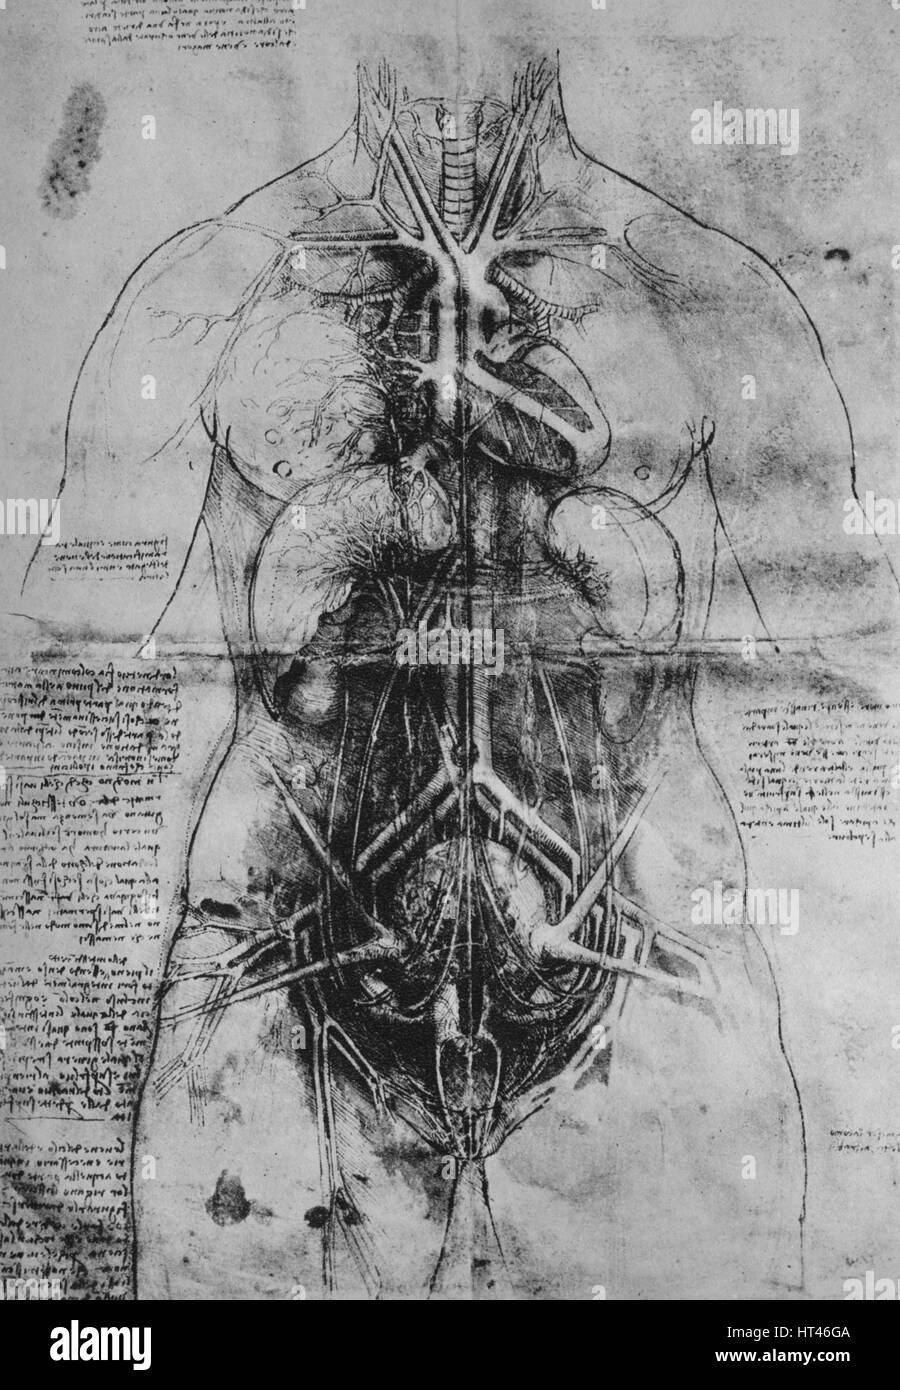 Da Vinci Female Anatomical Study Stock Photos & Da Vinci Female ...